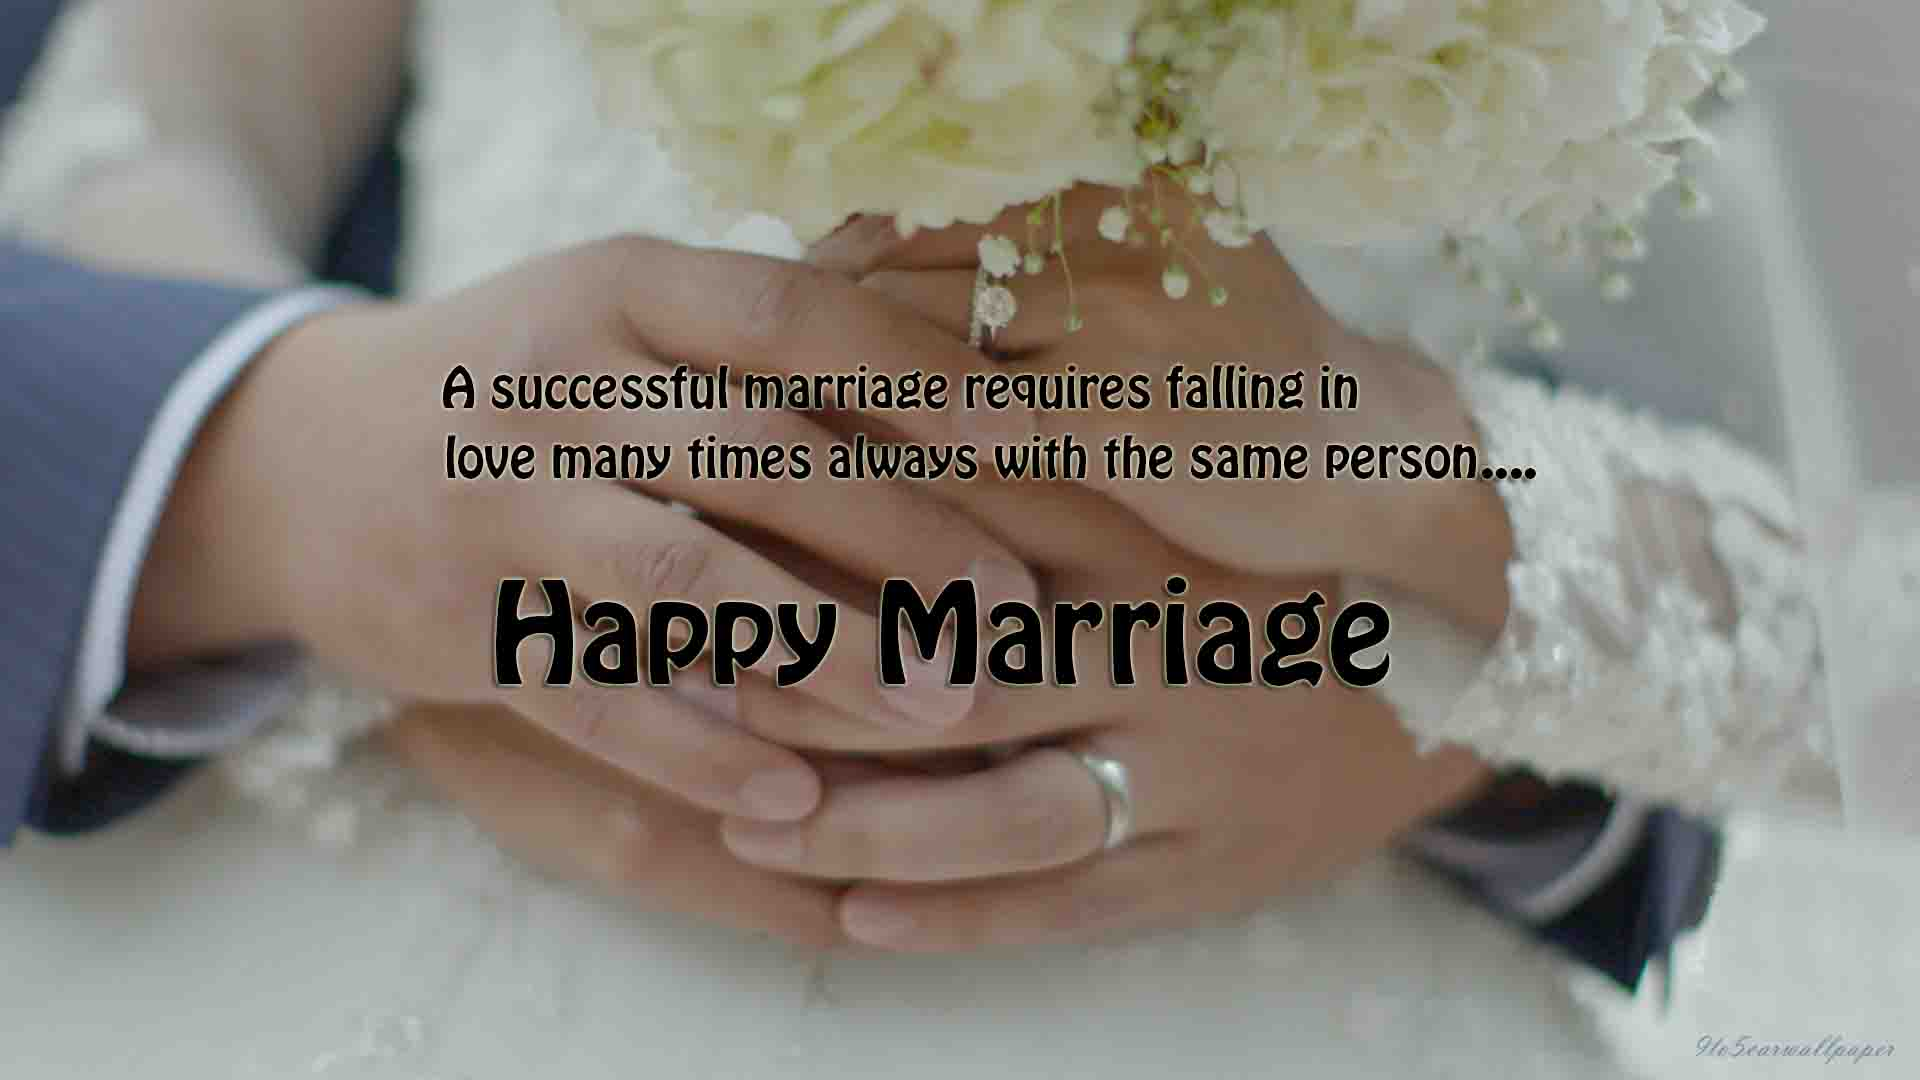 Happy Marriage Pics Images Quotes 2017